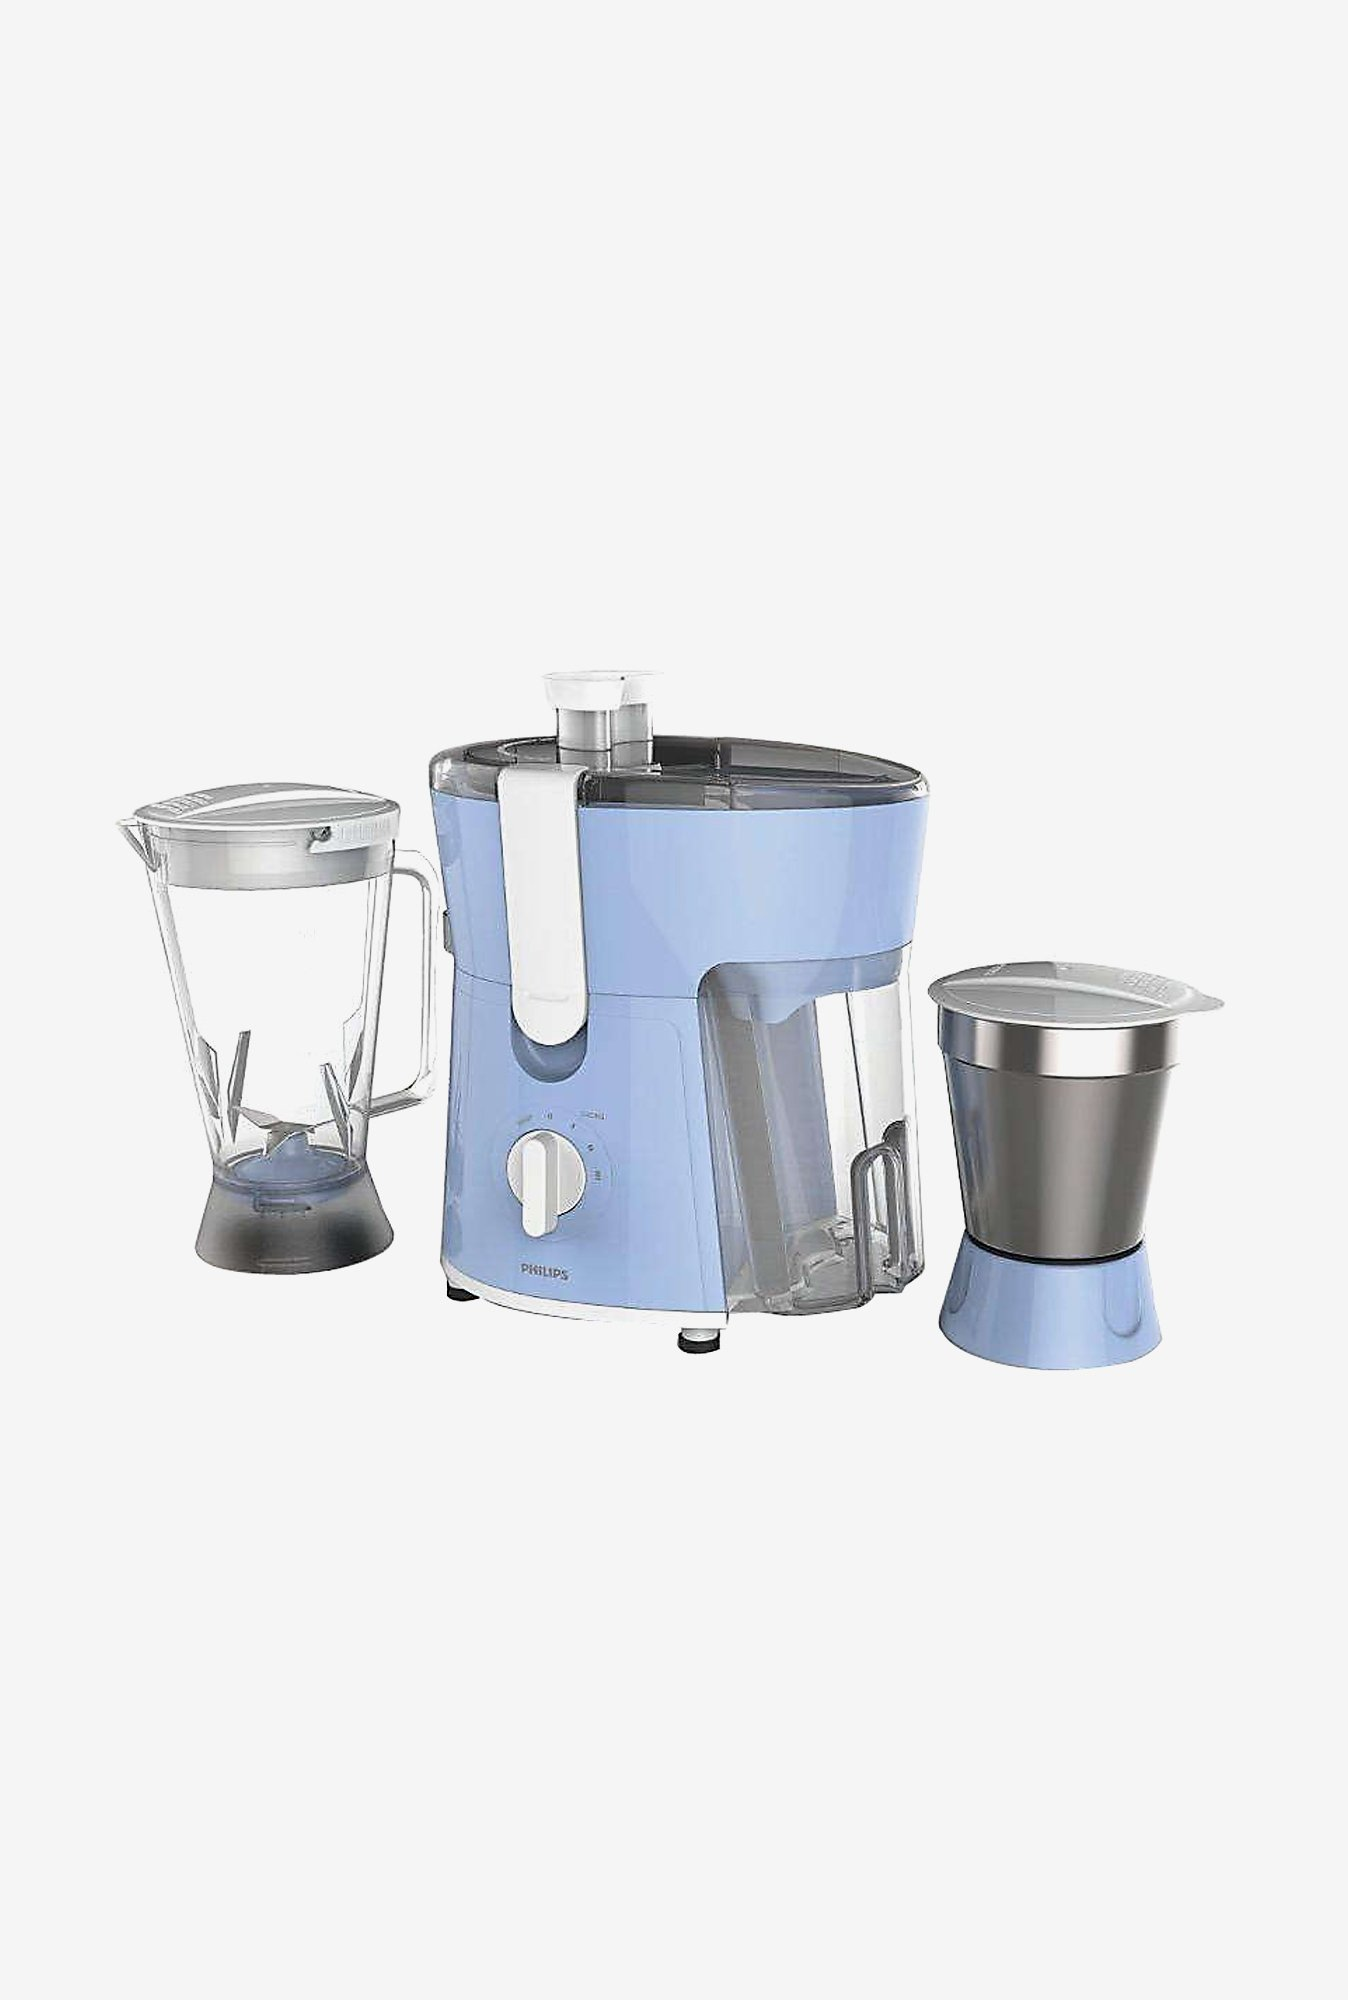 Philips HL7575/00 600W Juicer Mixer Grinder (White & Blue)